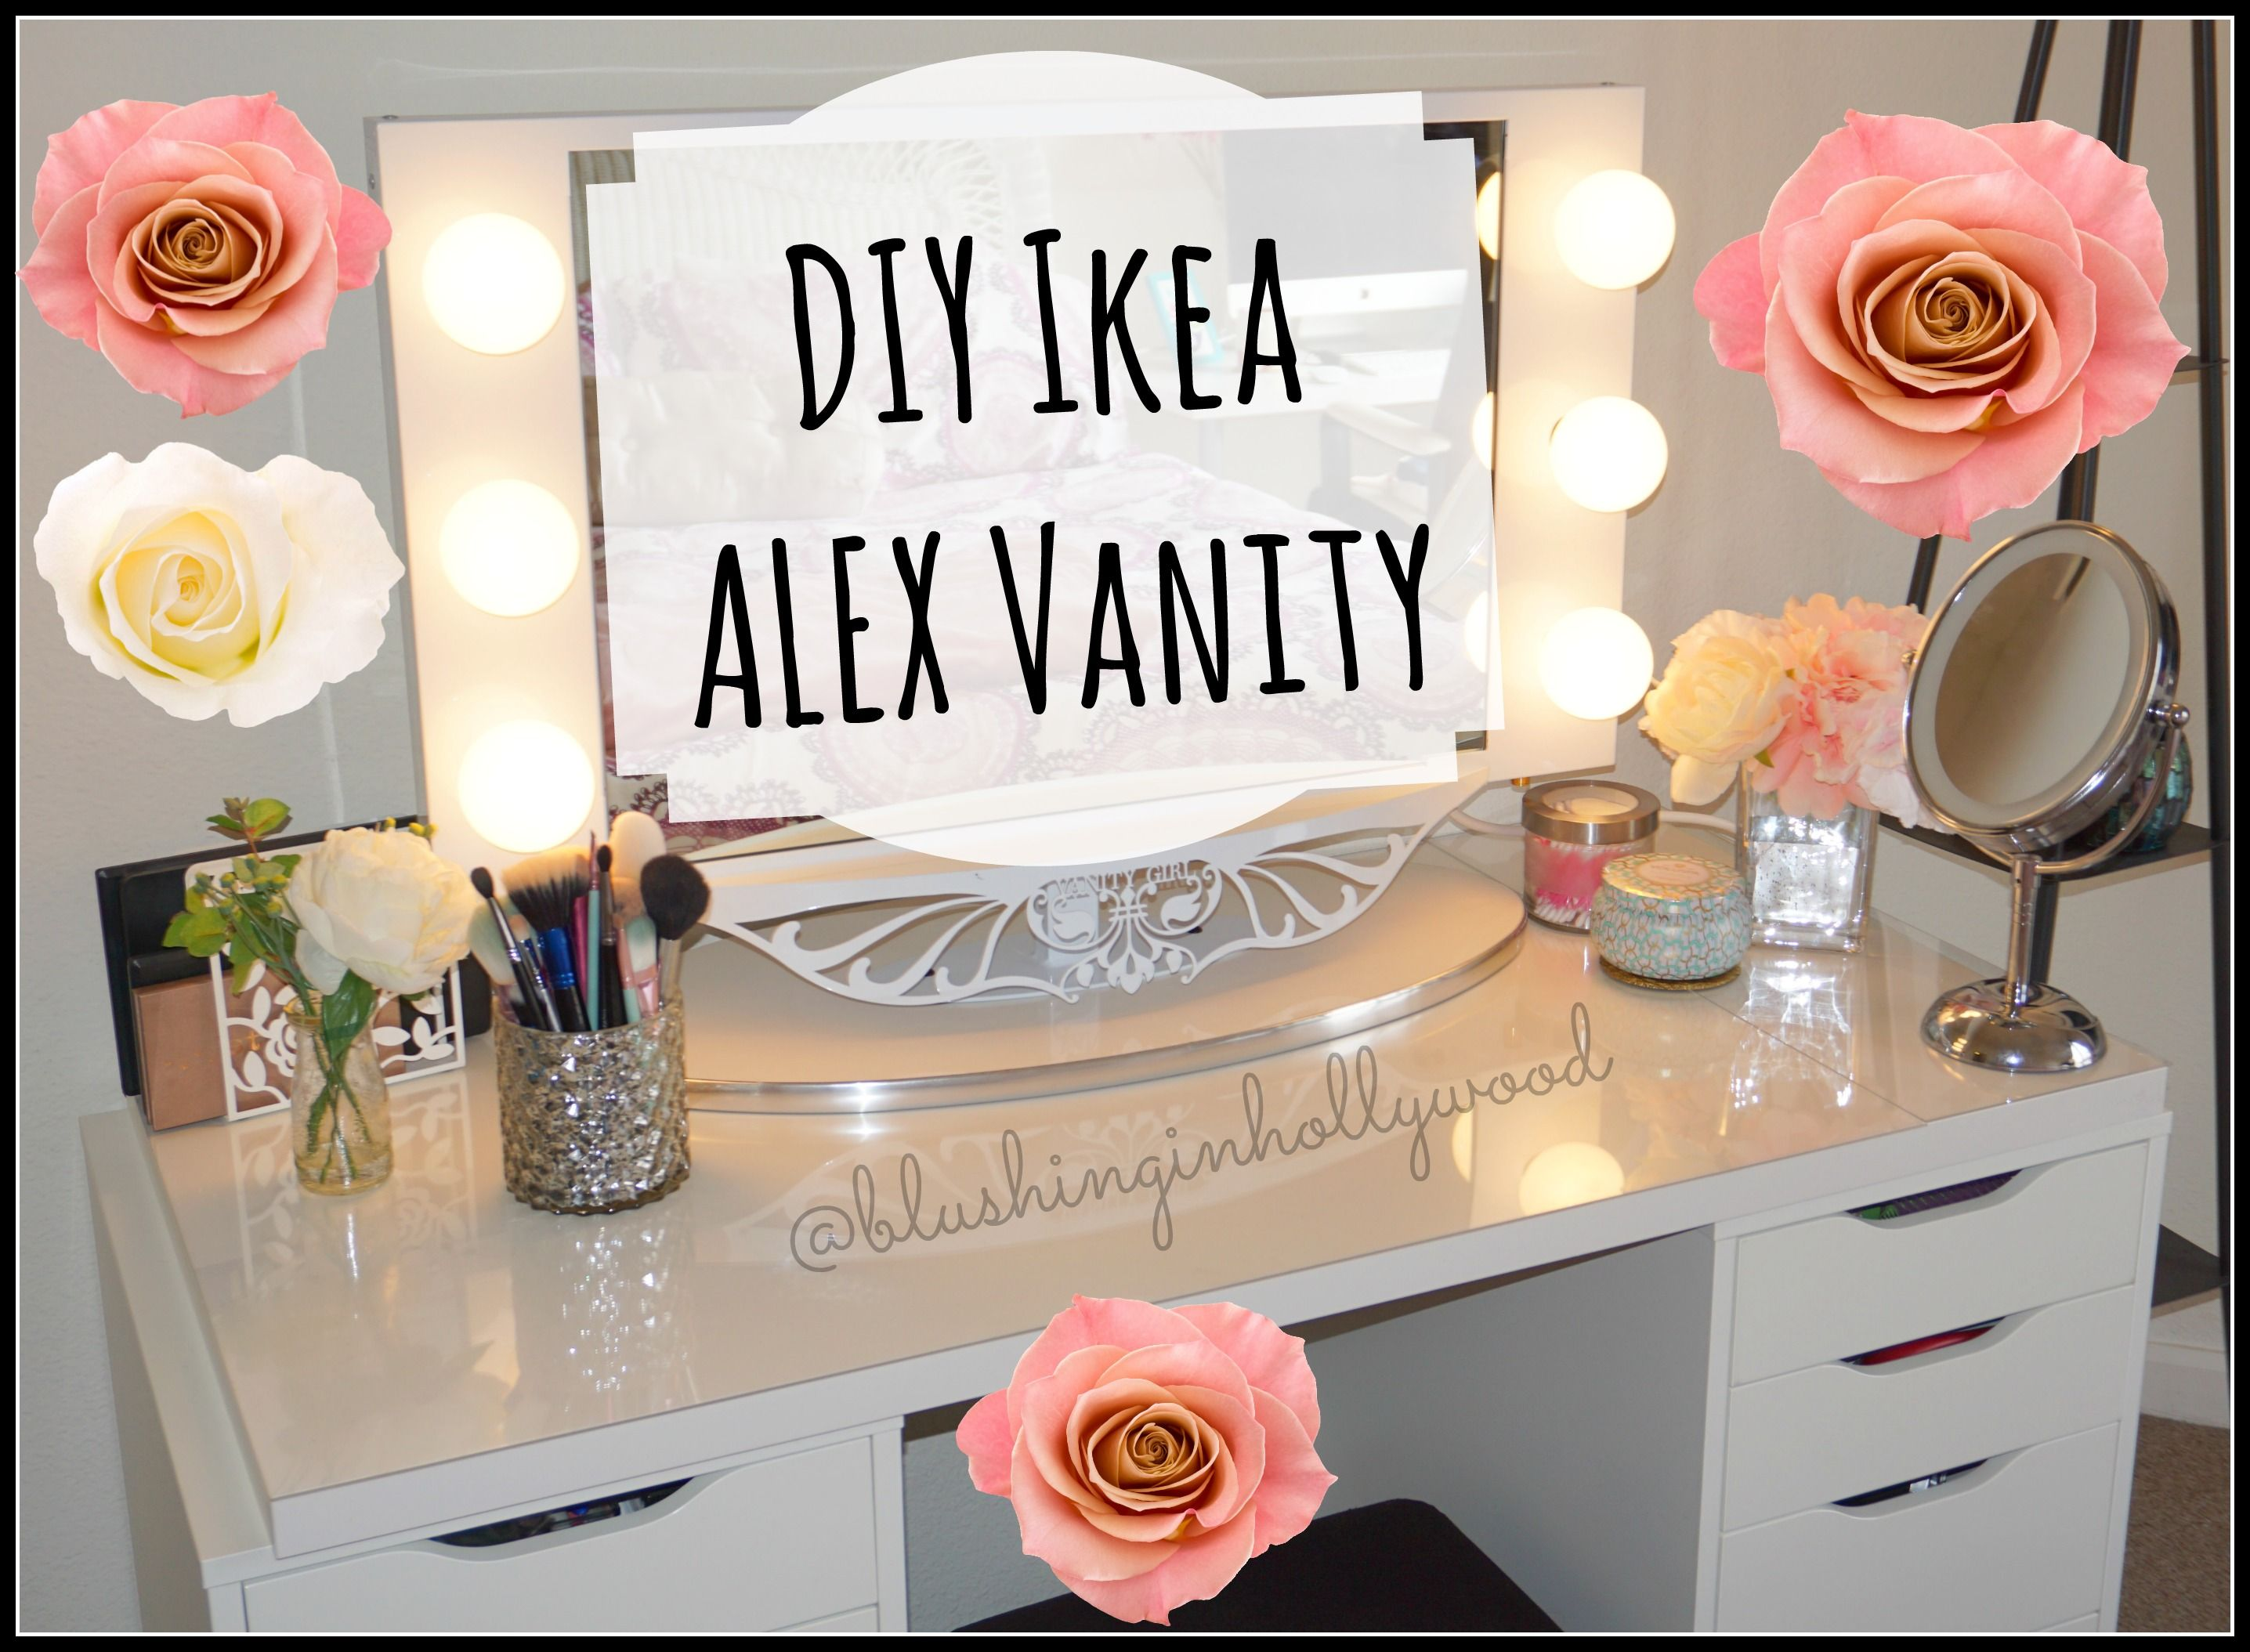 Diy ikea alex vanity ikea alex vanities and makeup diy ikea alex vanity blushing in hollywood solutioingenieria Image collections